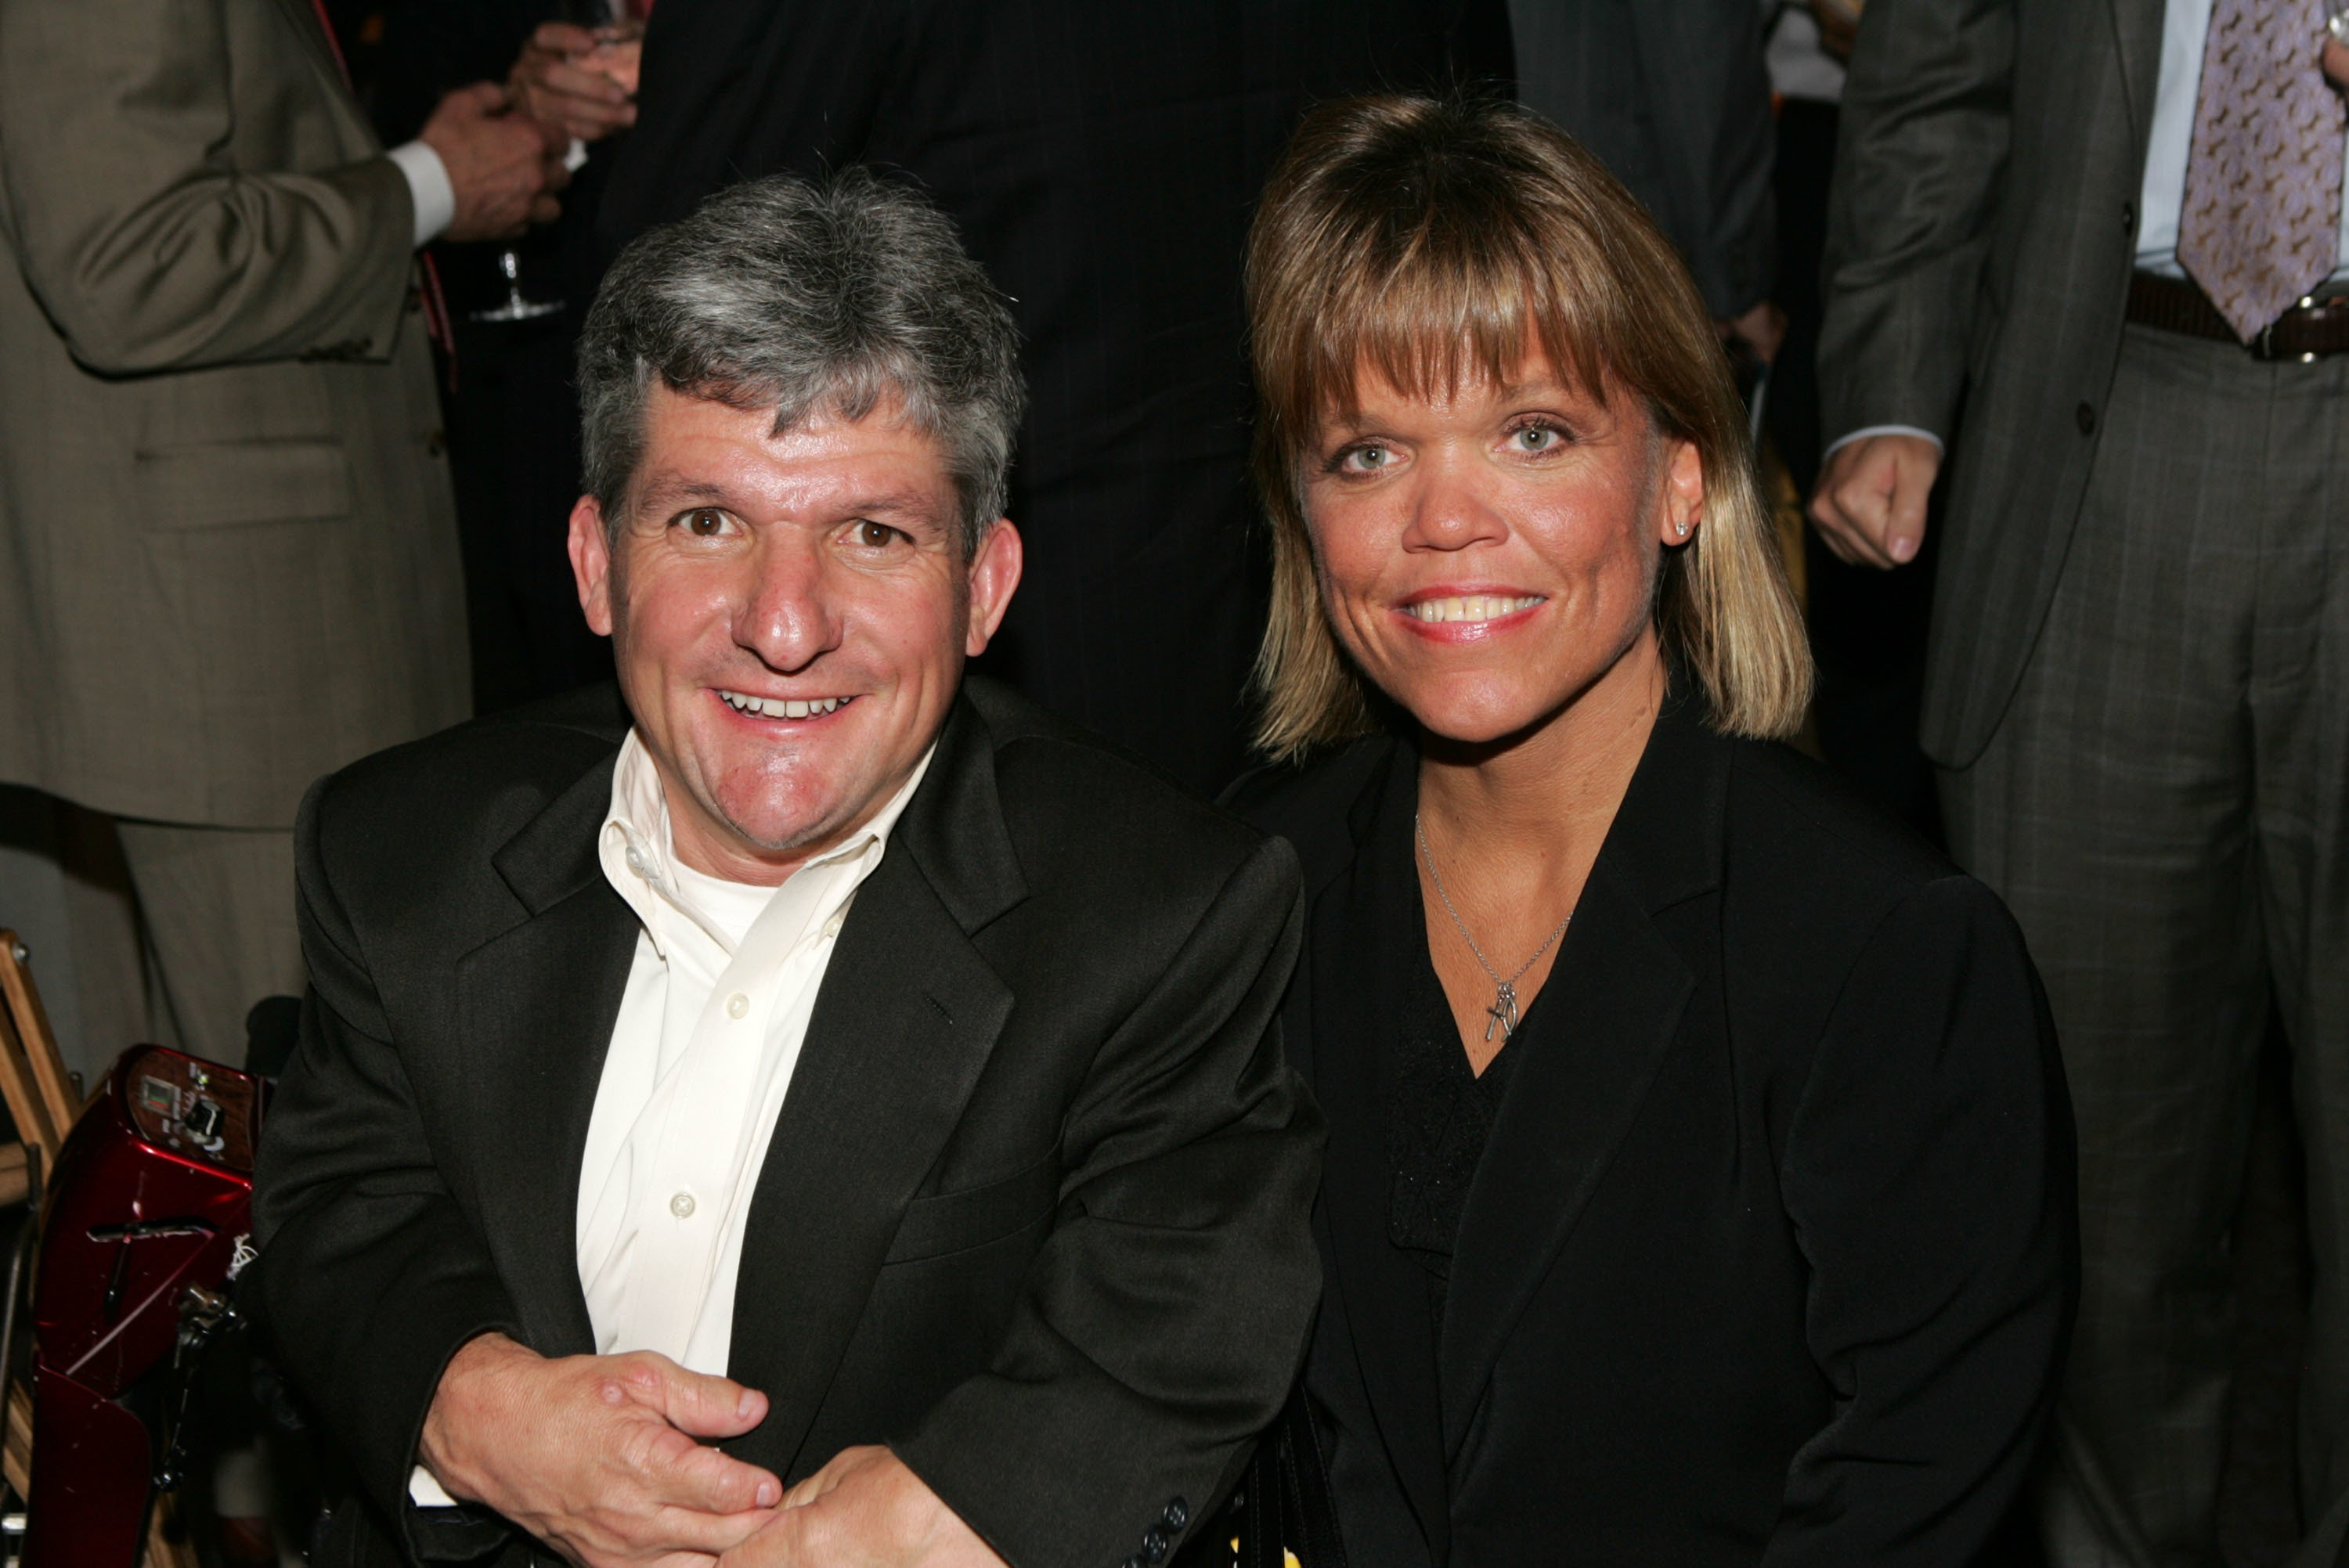 Matt and Amy Roloff at the Discovery Upfront Presentation NY - Talent Images on April 23, 2008, in New York City | Photo: Thos Robinson/Getty Images